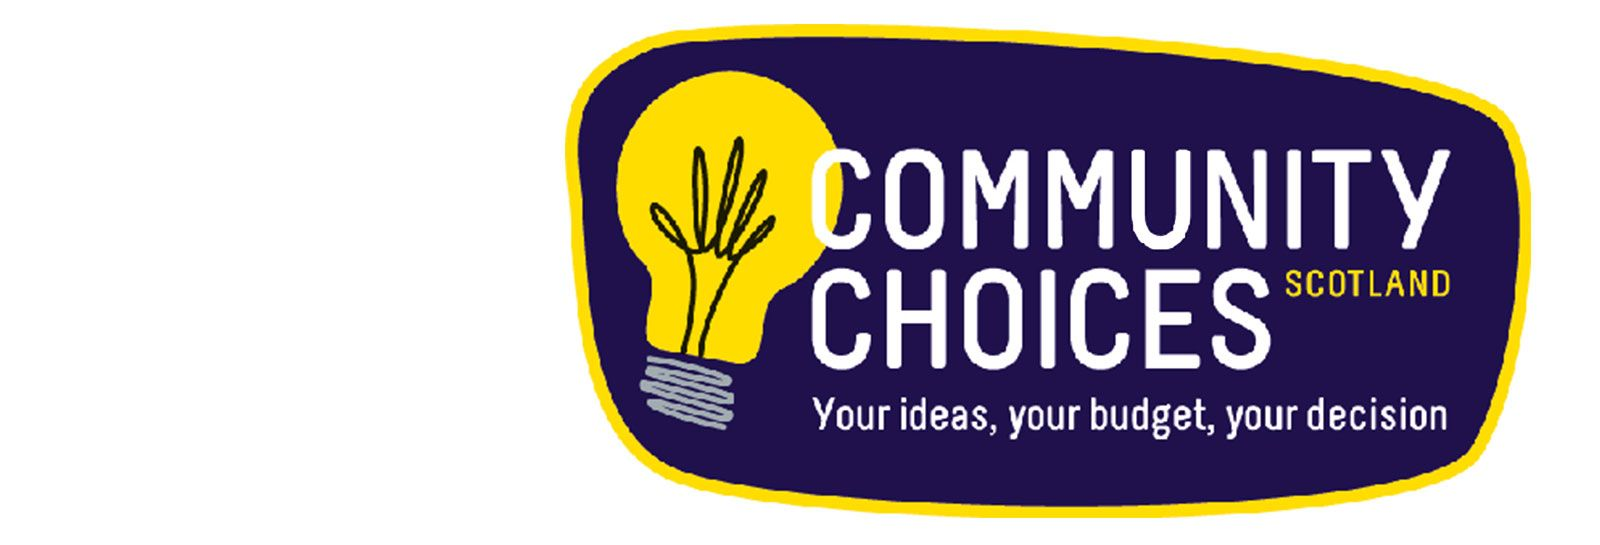 Community Choices Scotland: Your ideas, your budget, your decision banner image